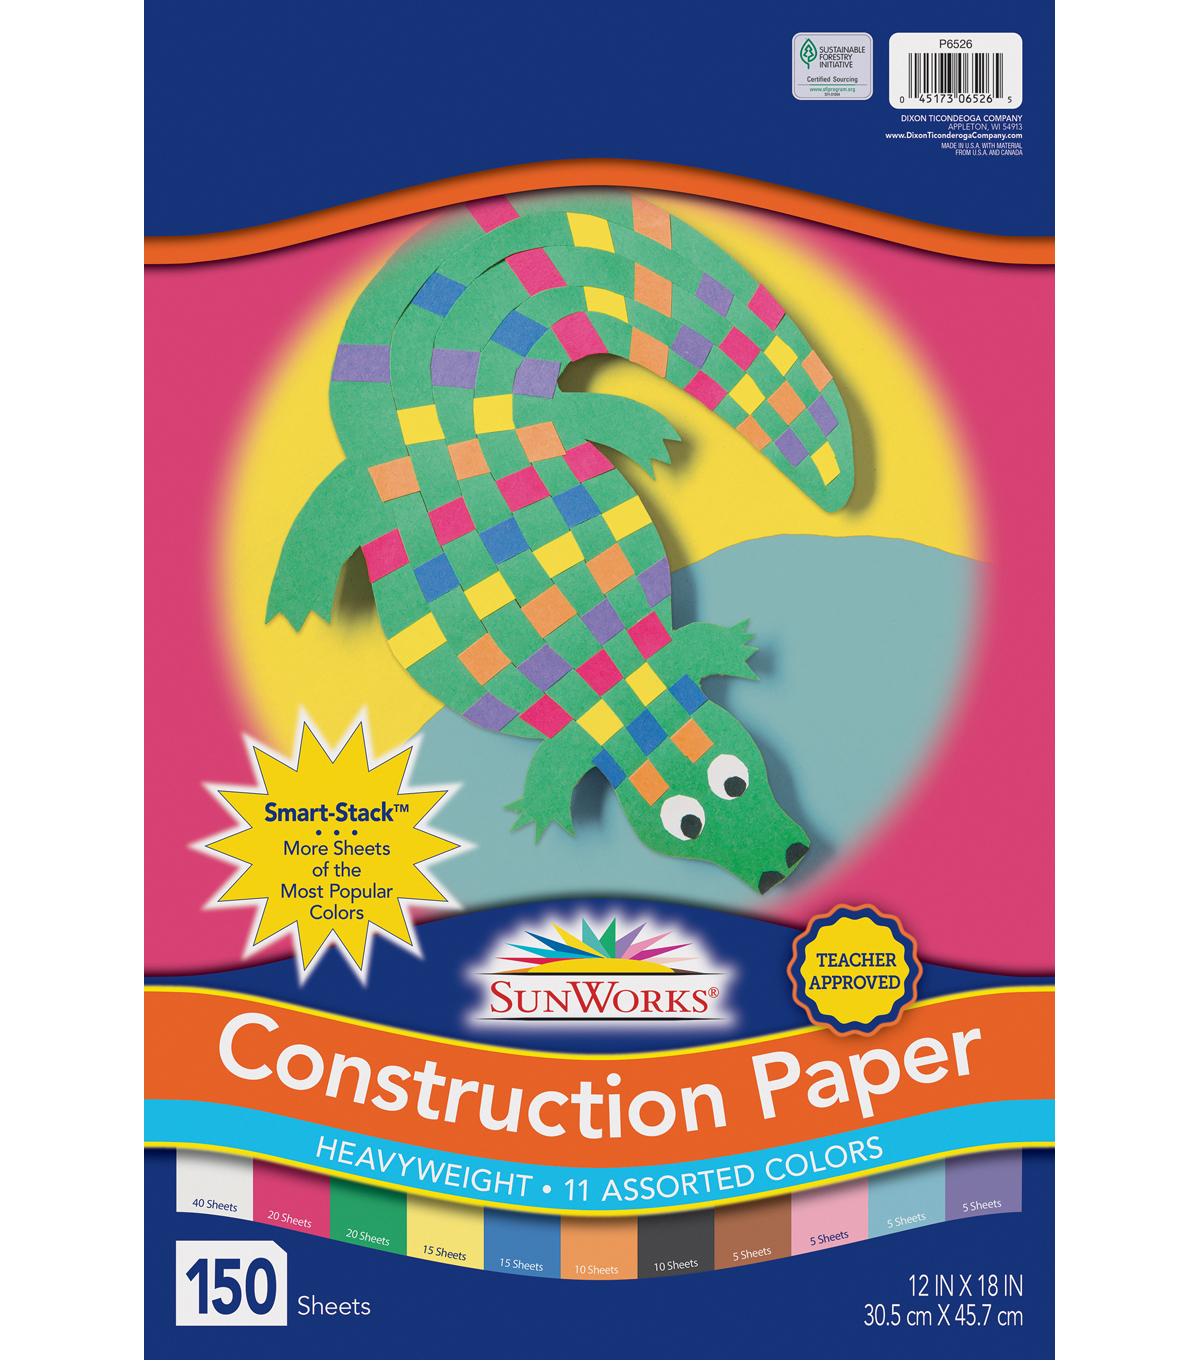 Sunworks Construction Paper Smart Stack Assortment 12x18 Joann